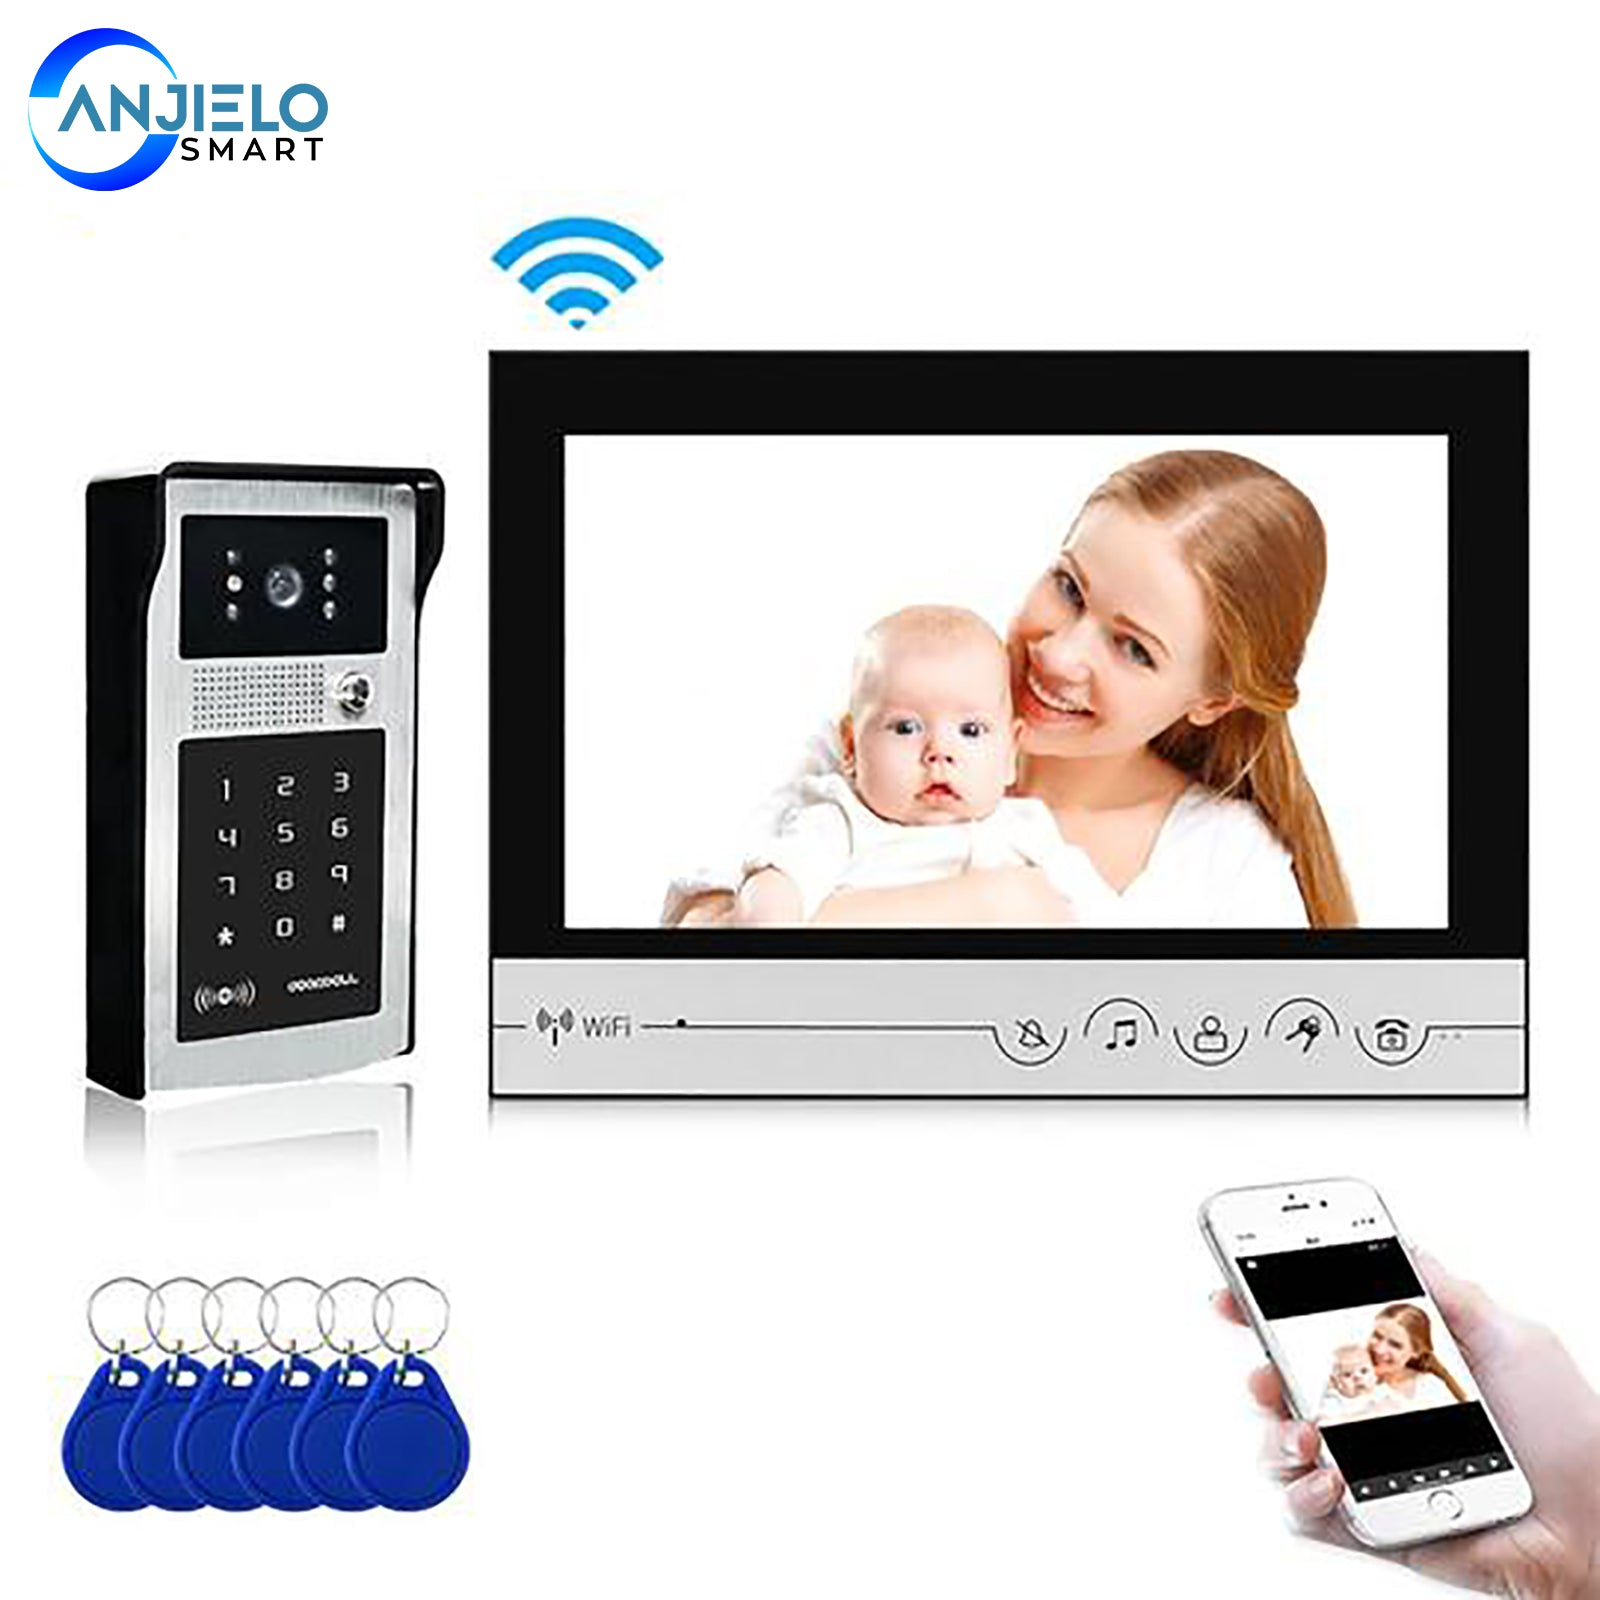 WIFI Smart 9 Inch Home Video Doorbell System Visual Door Phone Unlock HD Screen